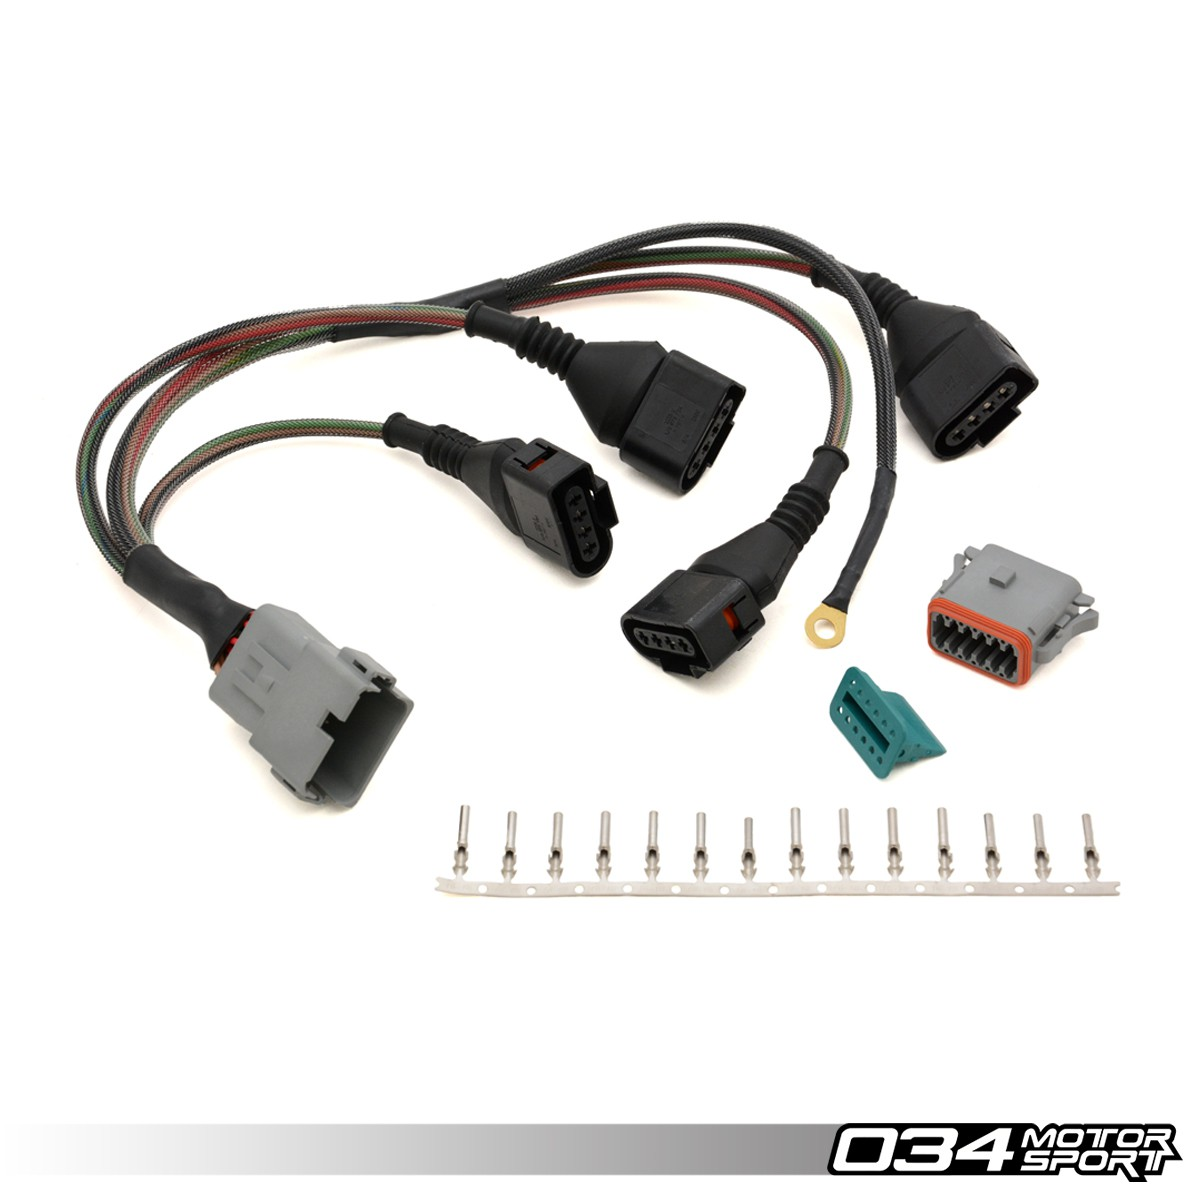 repair update harness audi volkswagen 18t with 4 wire coils 034motorsport 034 701 0004 2 repair update harness, audi volkswagen 1 8t with 4 wire coils how to repair wire harness connector at crackthecode.co